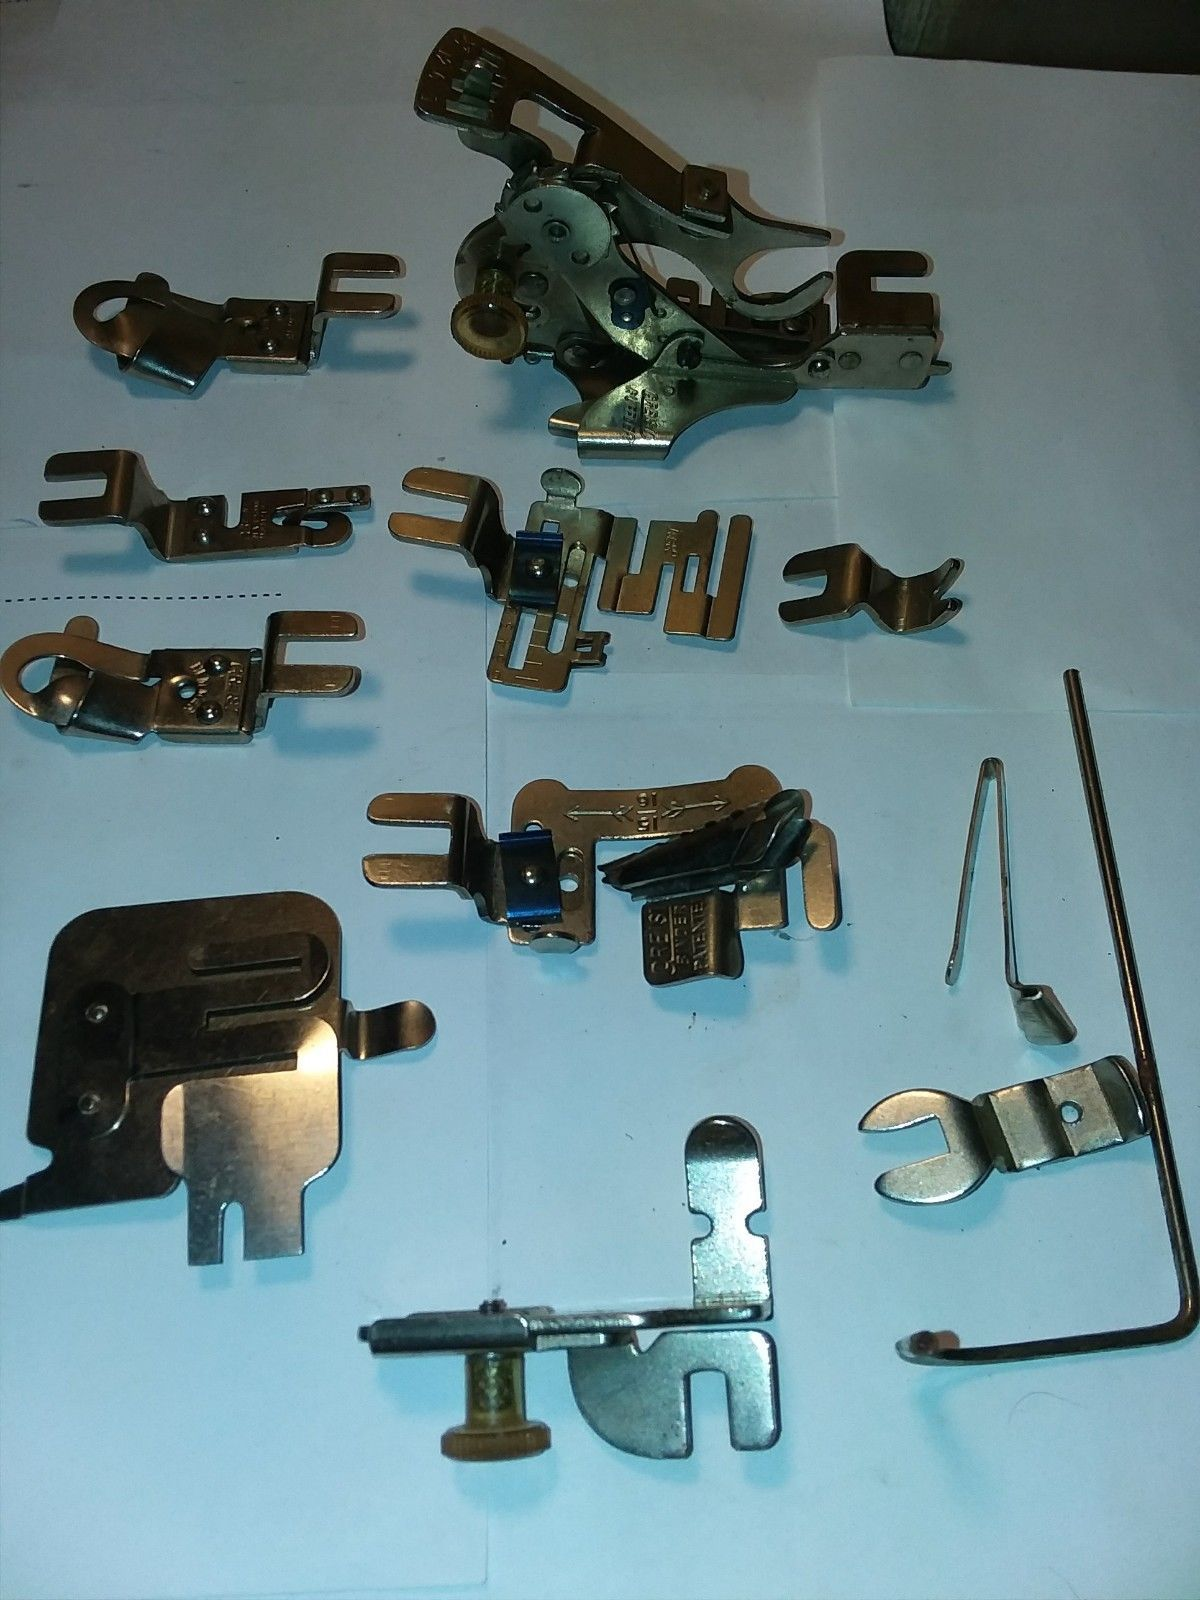 Greist sewing machine attachments,spare parts - $24.00 CAD